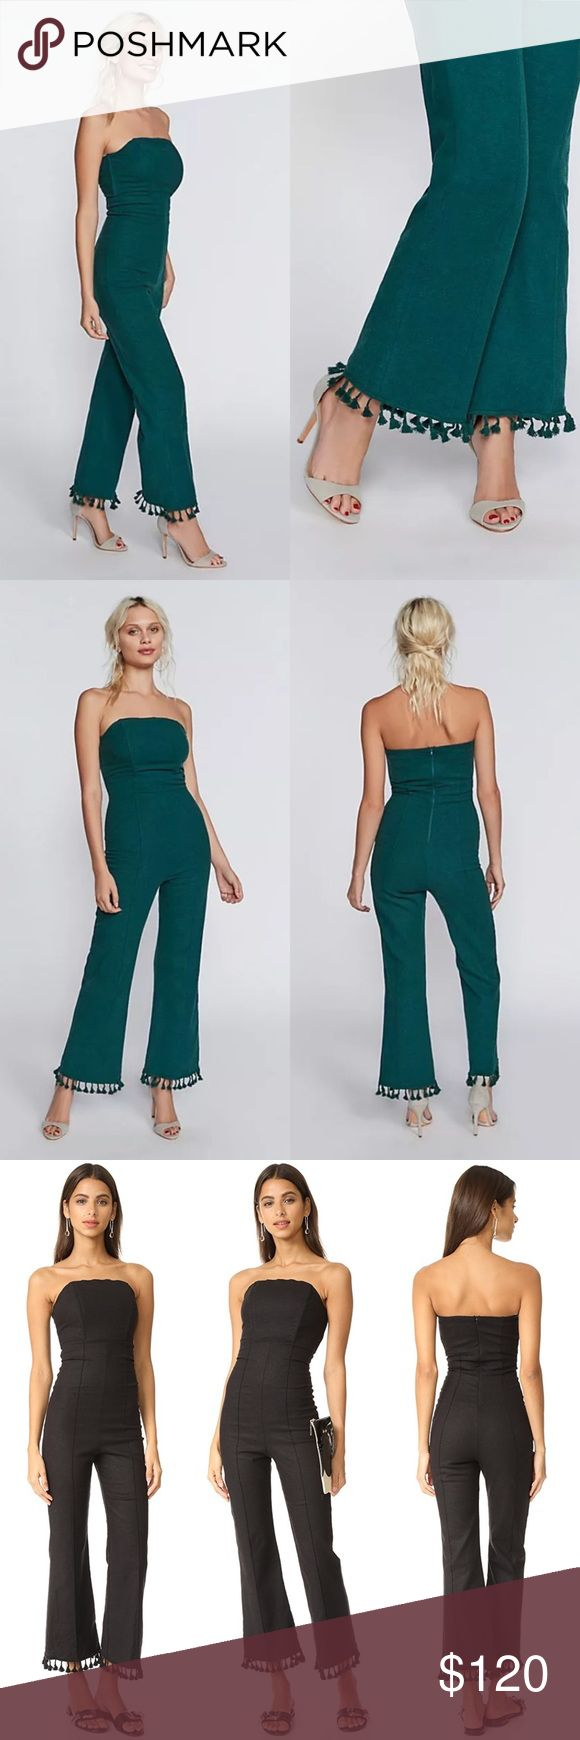 """STONE COLD FOX HOLIDAY NAPLES JUMPSUIT REFORMATION Gorgeous fitted """"Naples"""" jumpsuit from Stone Cold Fox. Fitted bustier style front, tailored waist and hips, semi crop legs with adorable tassels. Makes an amazing vacation piece, but I love this worn formally or paired with a chunky sweater for cooler weather. Color is the gorgeous green in first photos, but fit is shown better in second photos. I am a size 4 and it looks like the model shots on me. Size """"1"""" is best for a US 4, waist 26"""" or…"""